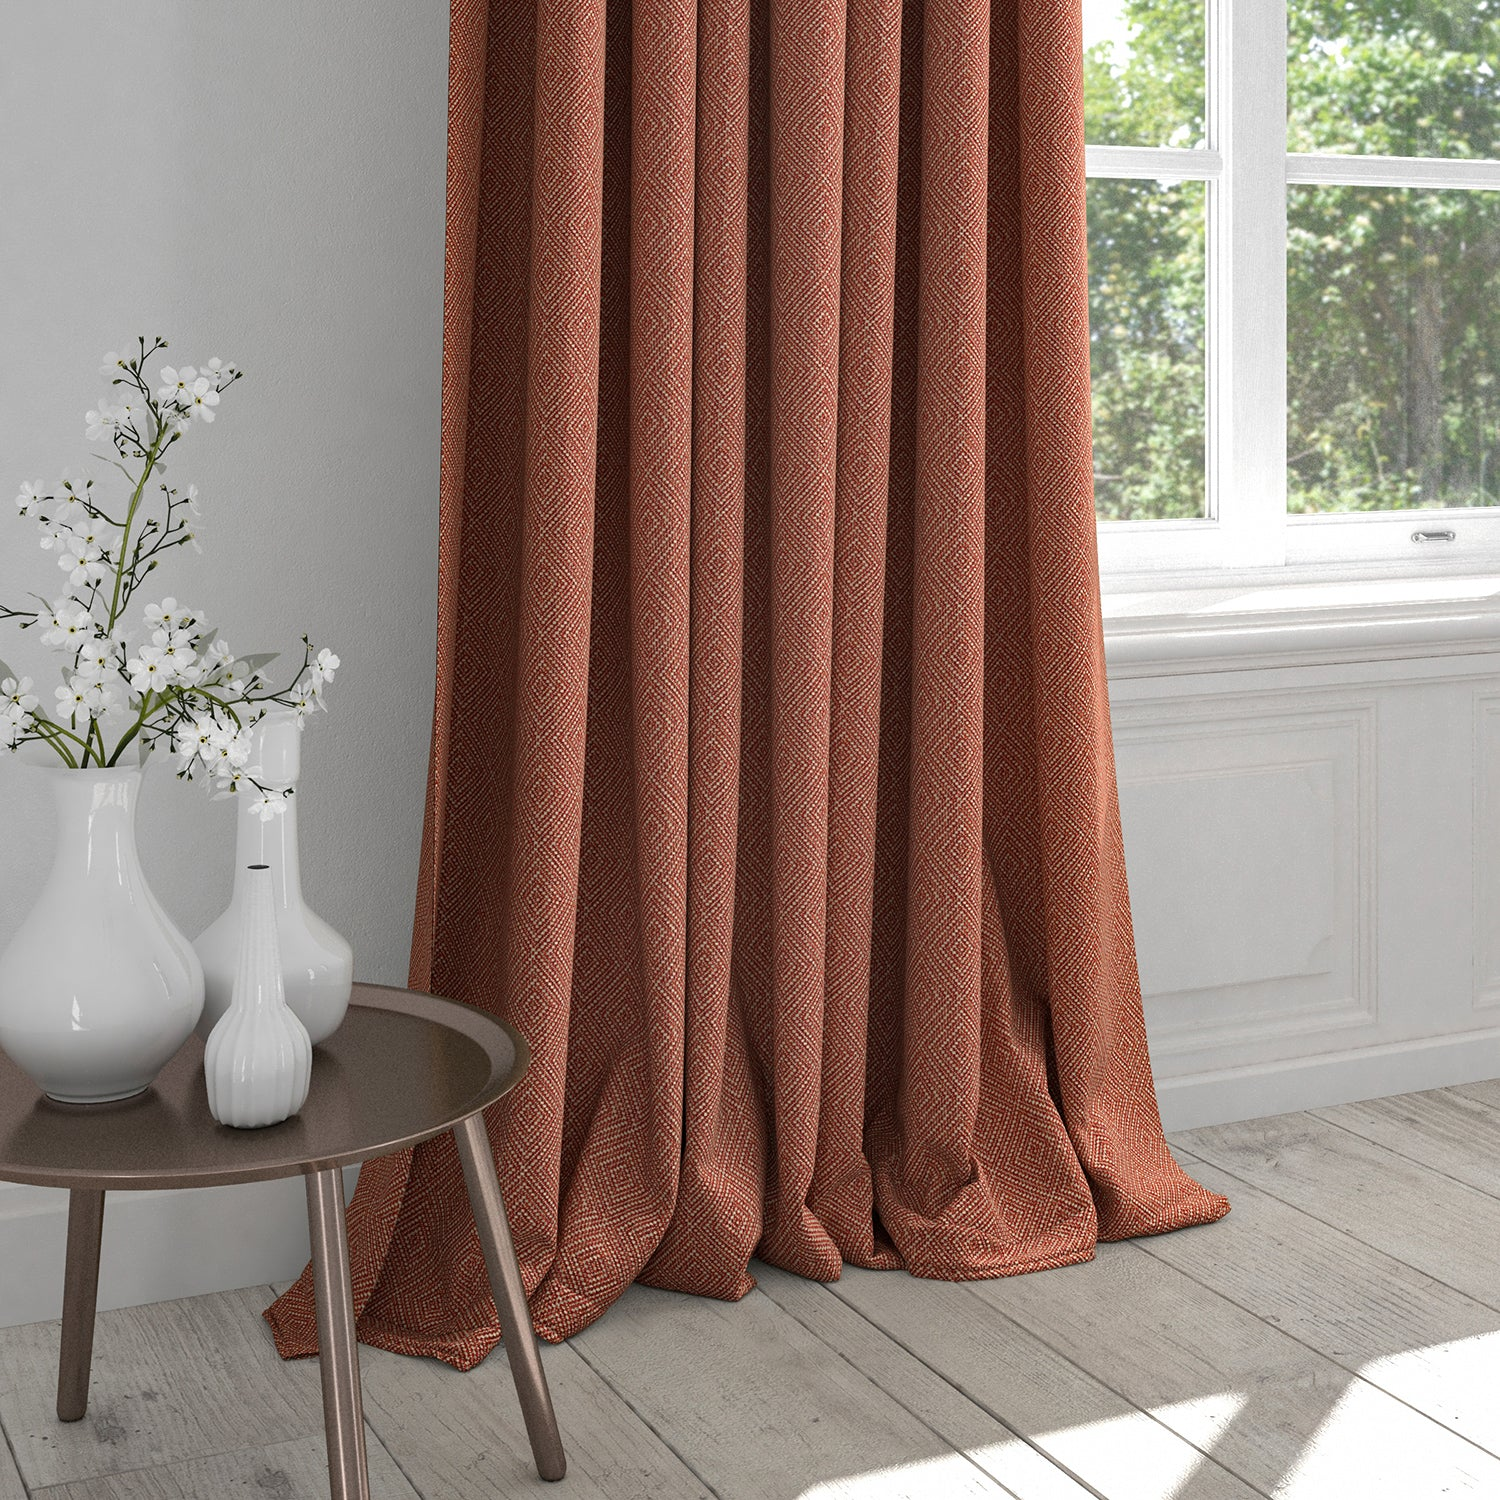 Curtain in a terracotta fabric with light neutral woven geometric design